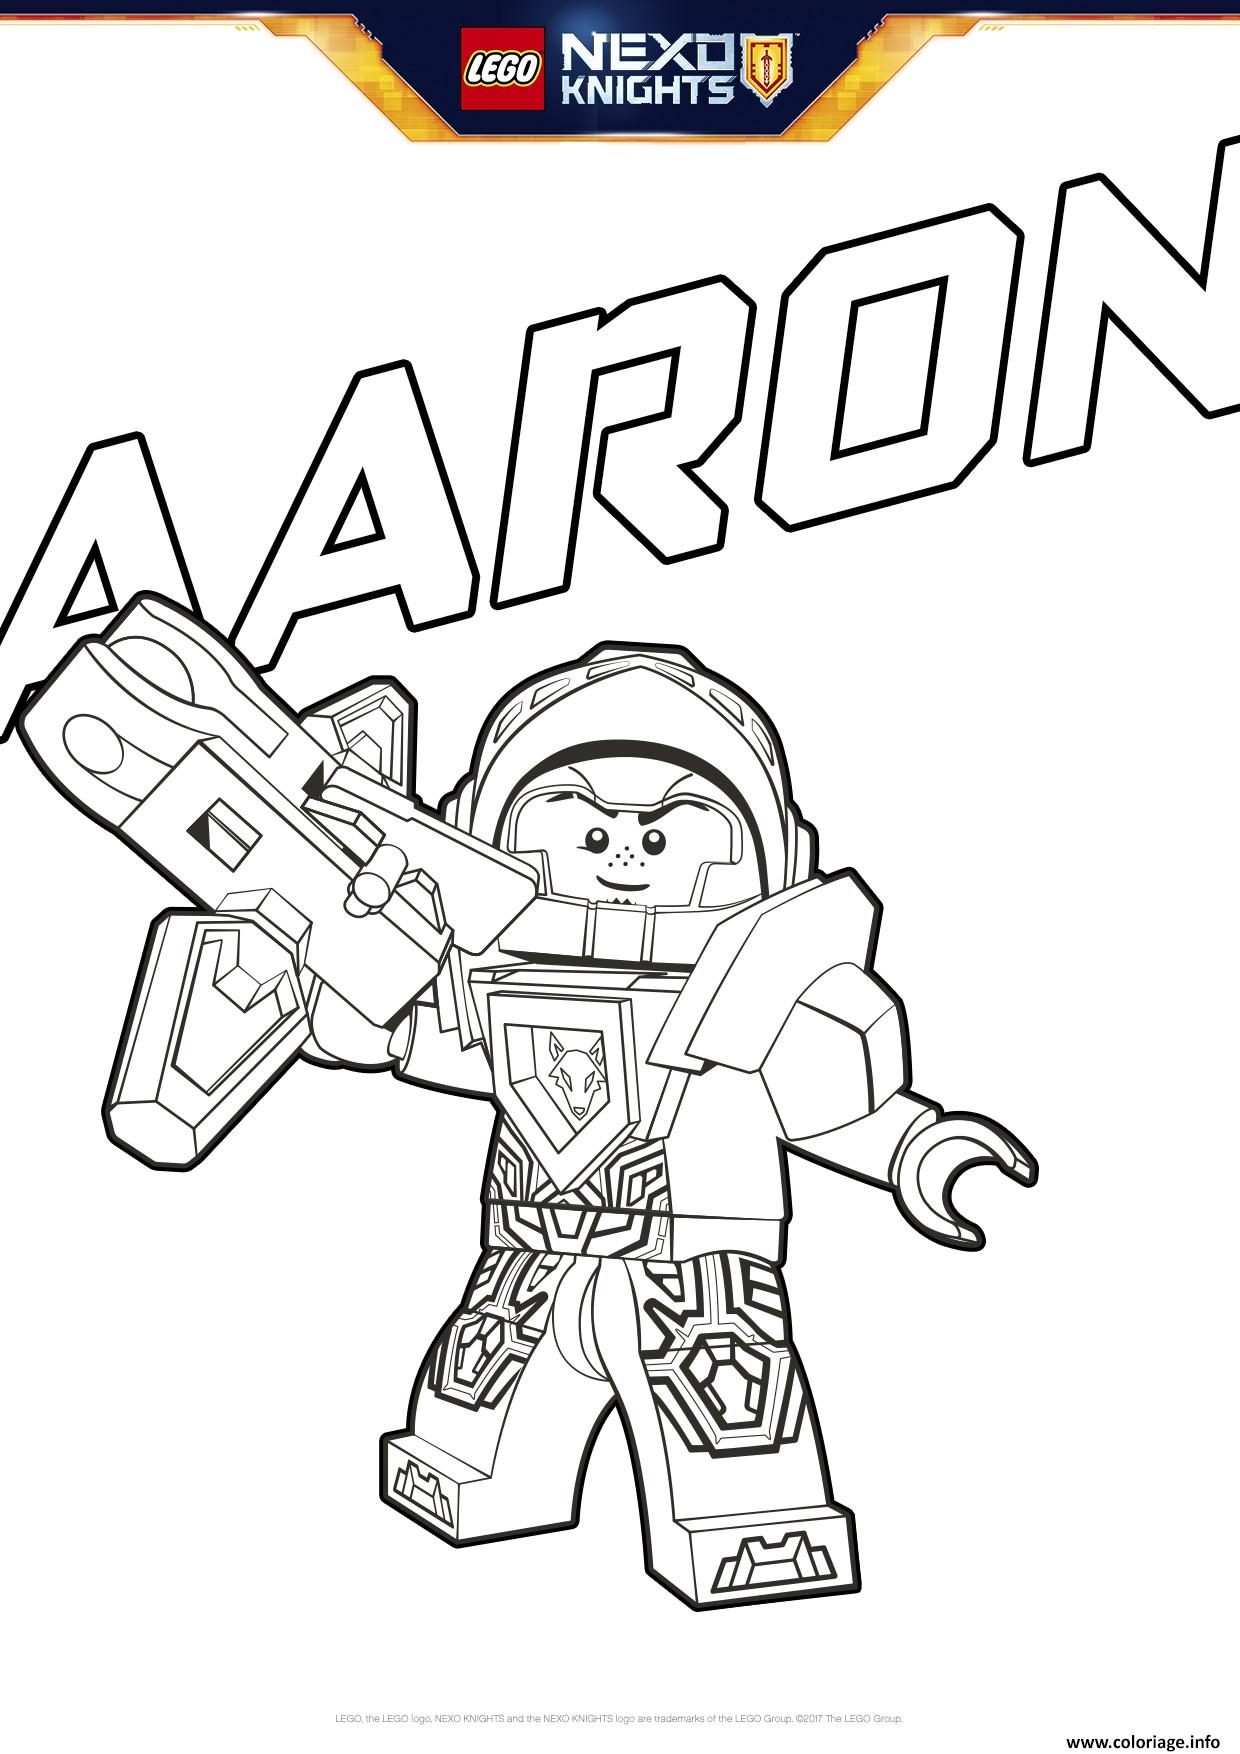 Coloriage Lego Nexo Knights Aaron Dessin à Imprimer